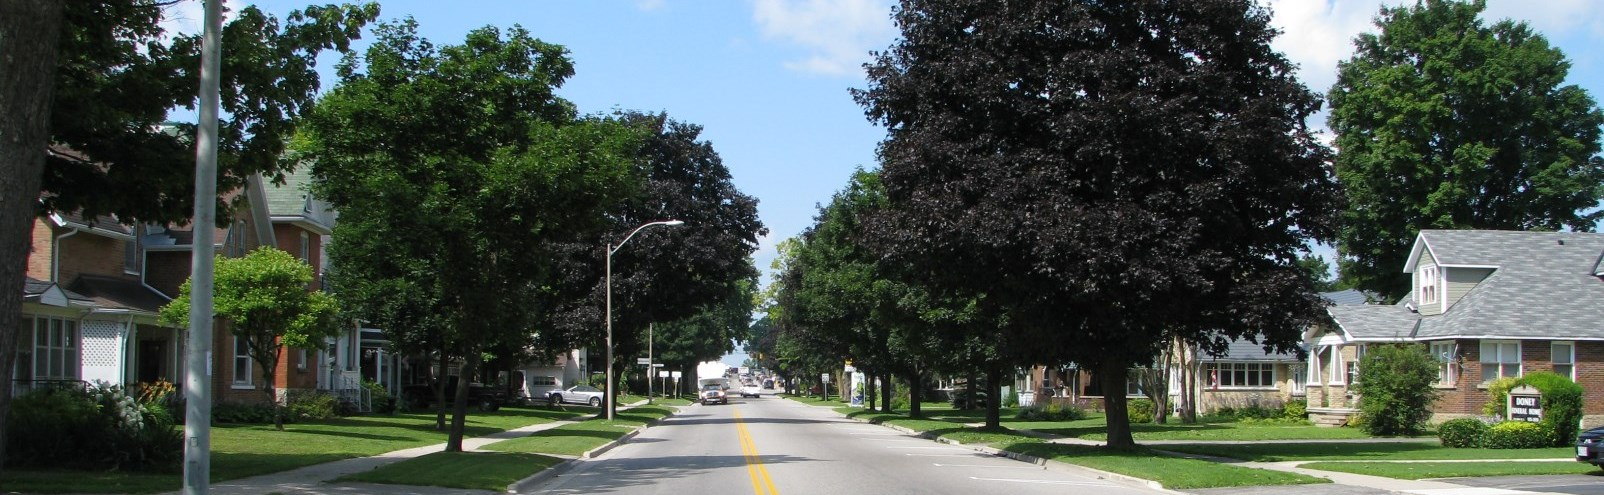 Neighborhood on Owen Sound Street in Shelburne Ontario